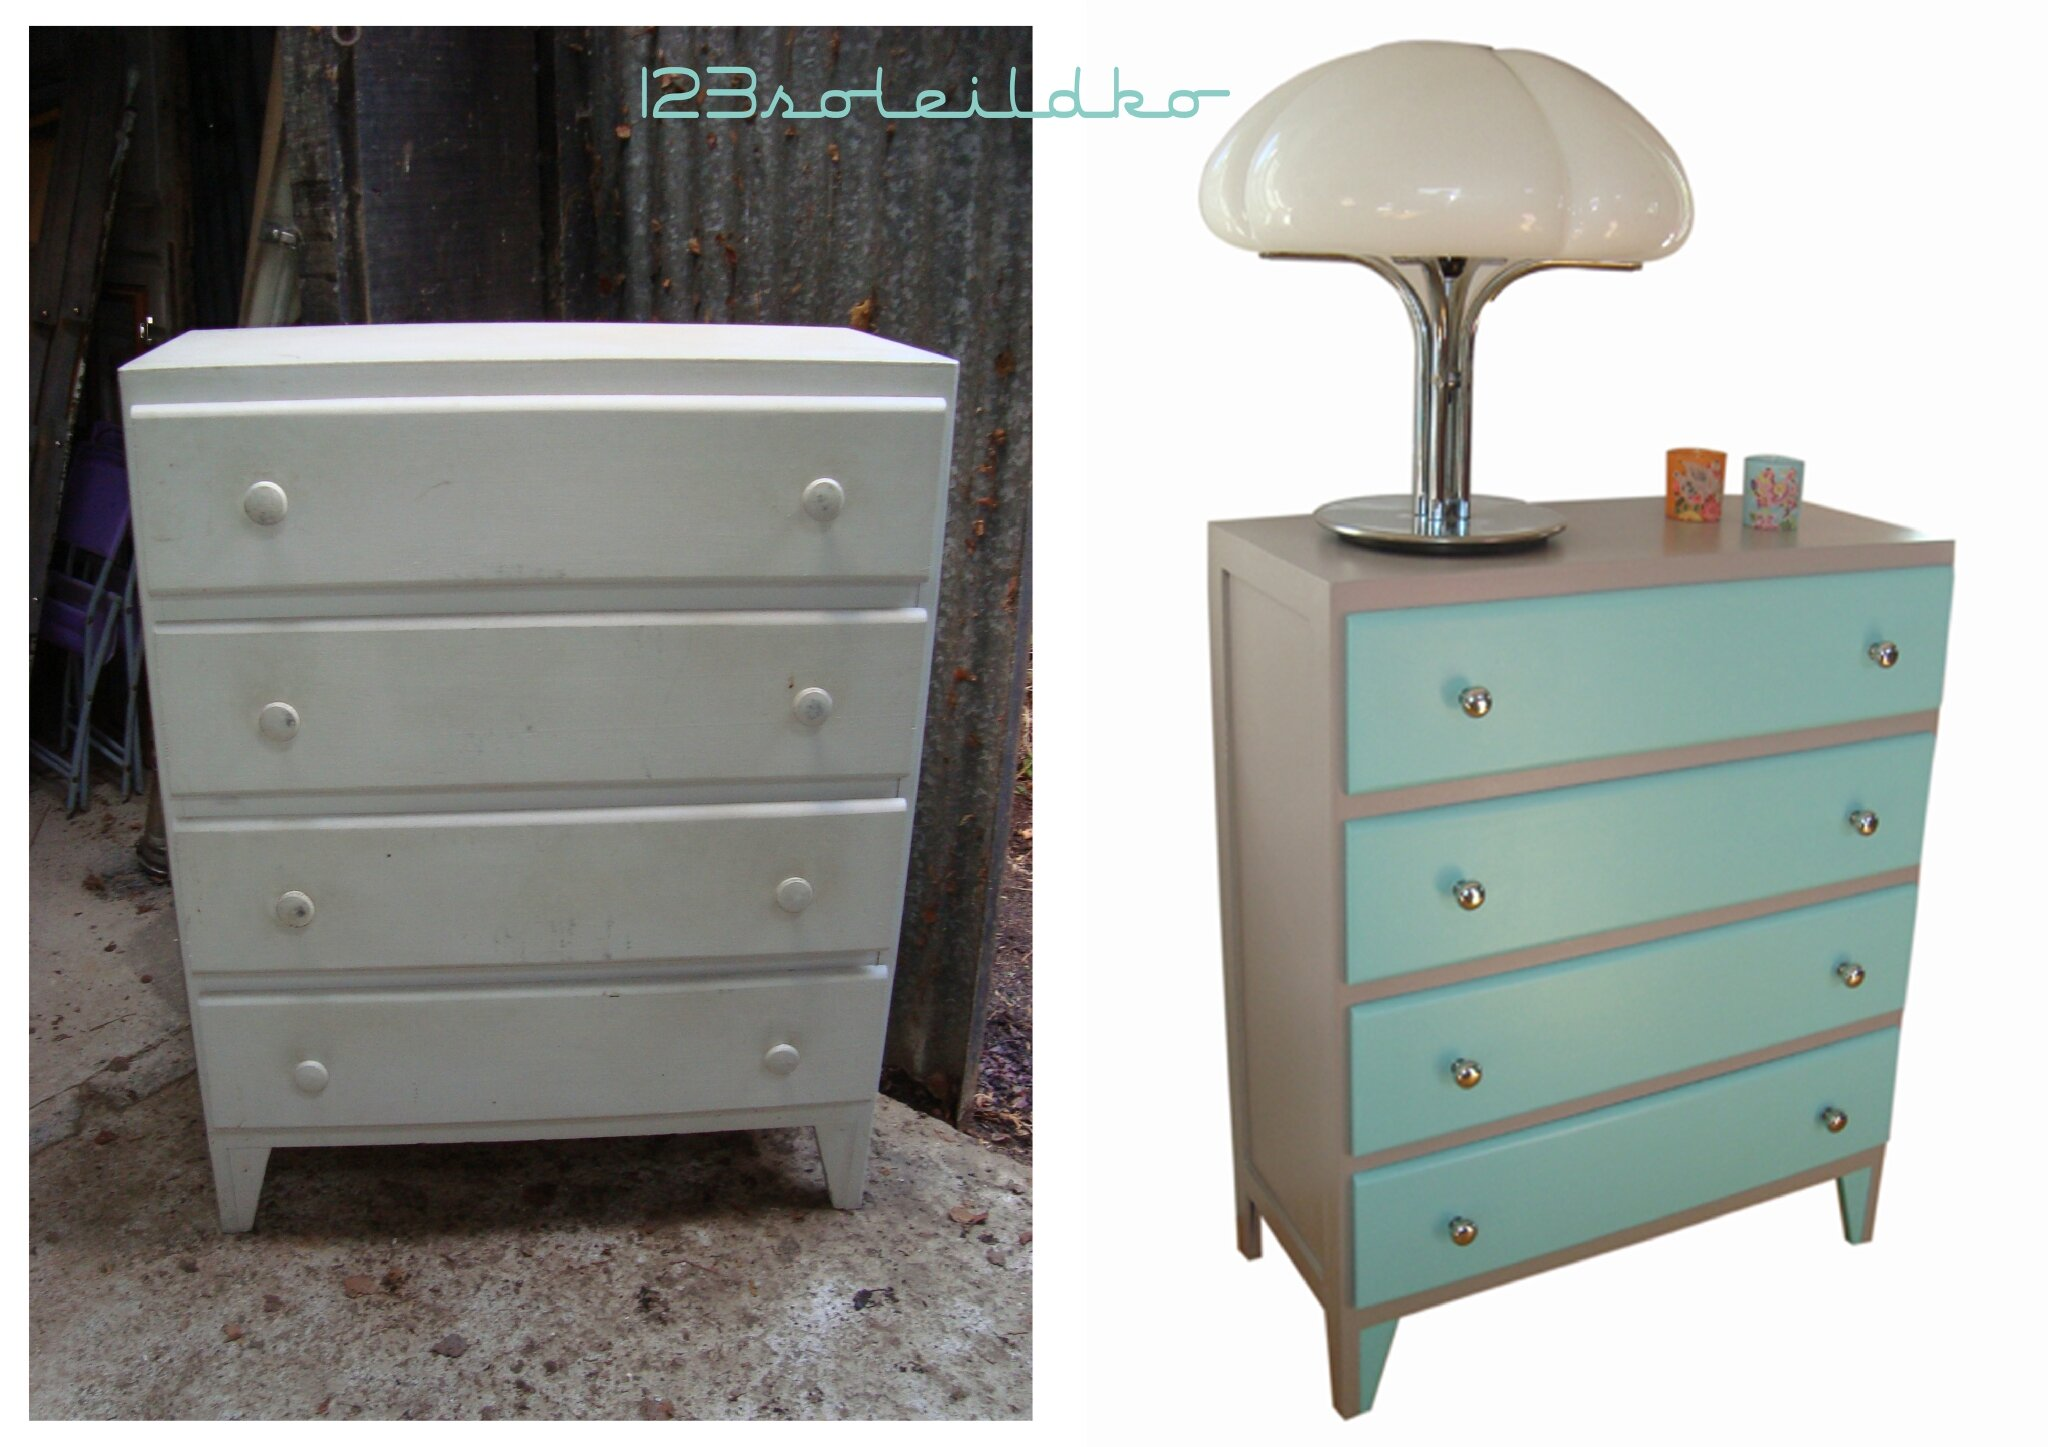 commode vintage 50's